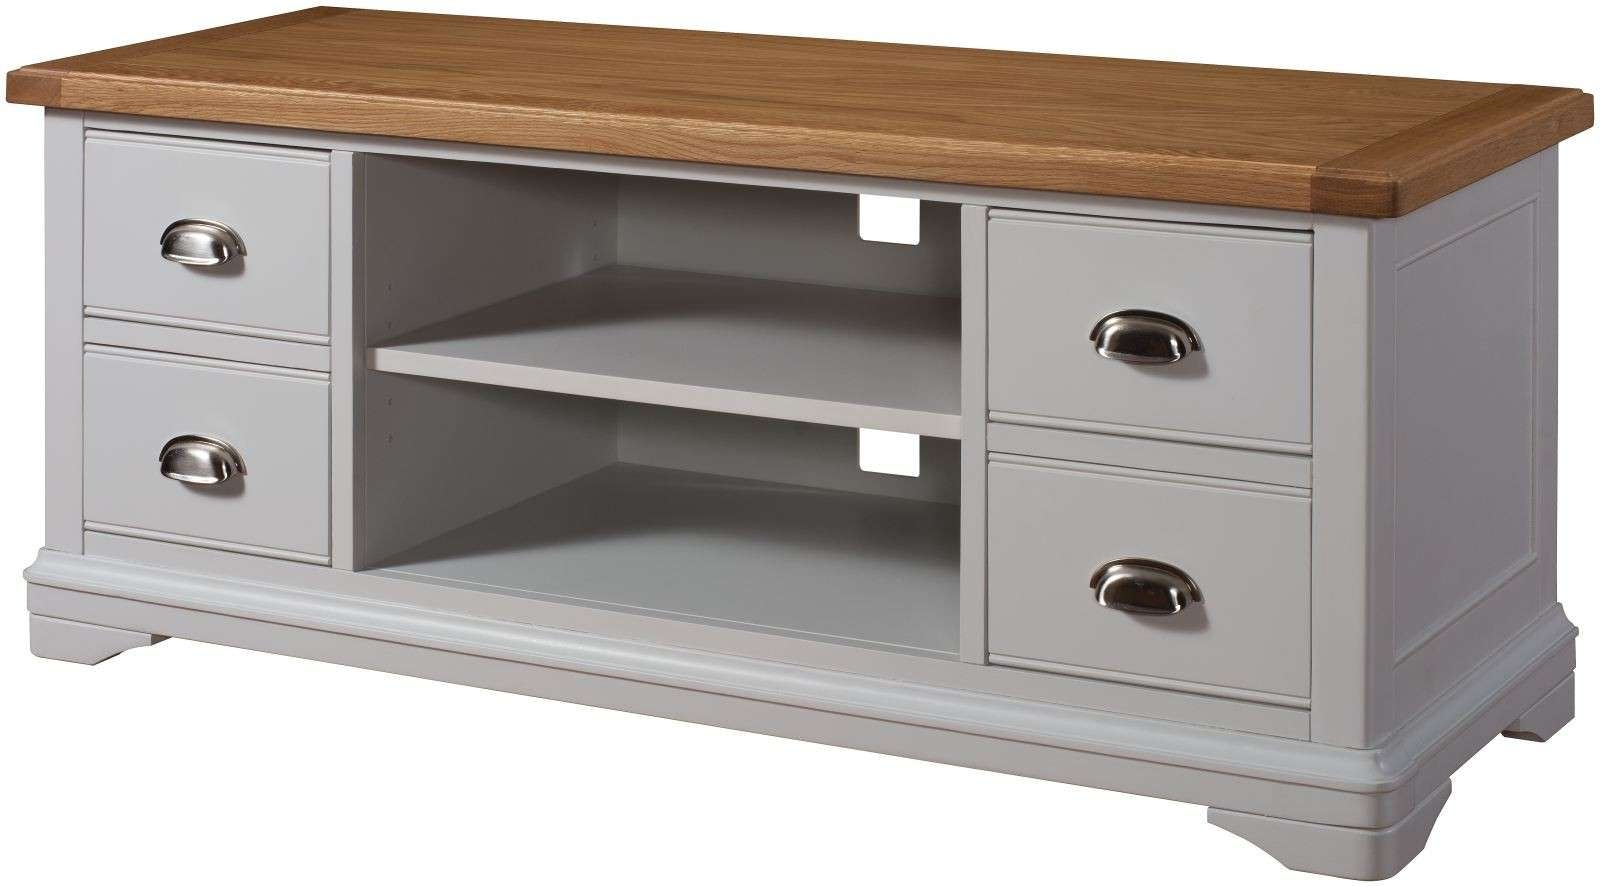 Tv Cabinet Throughout Low Oak Tv Stands (View 19 of 20)